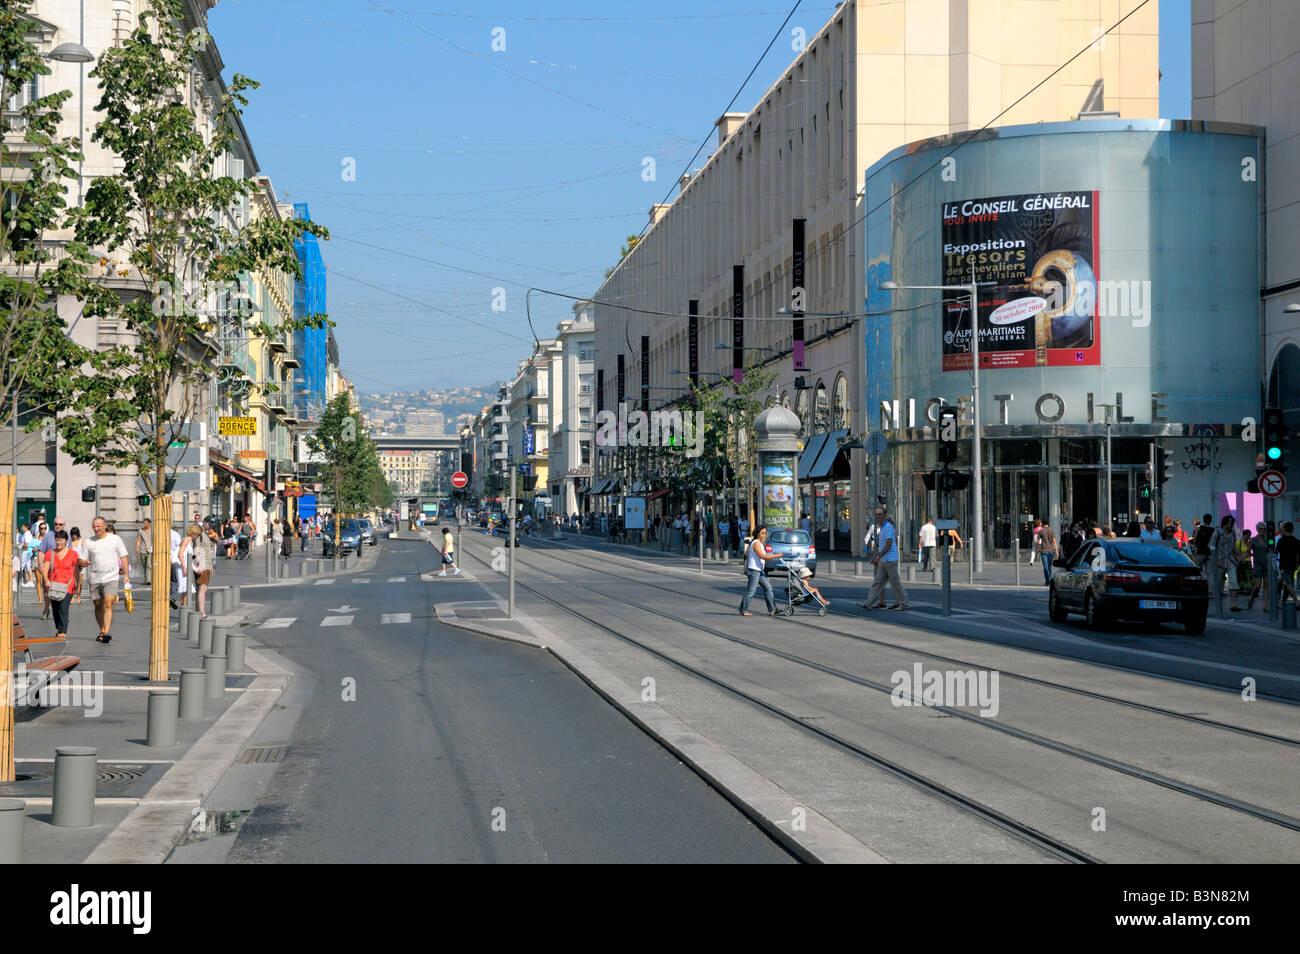 cadf75ffa06 Avenue Jean Medecin, the main street of Nice on the Cote d Azur, France,  free of traffic now that the tram is in operation 2008